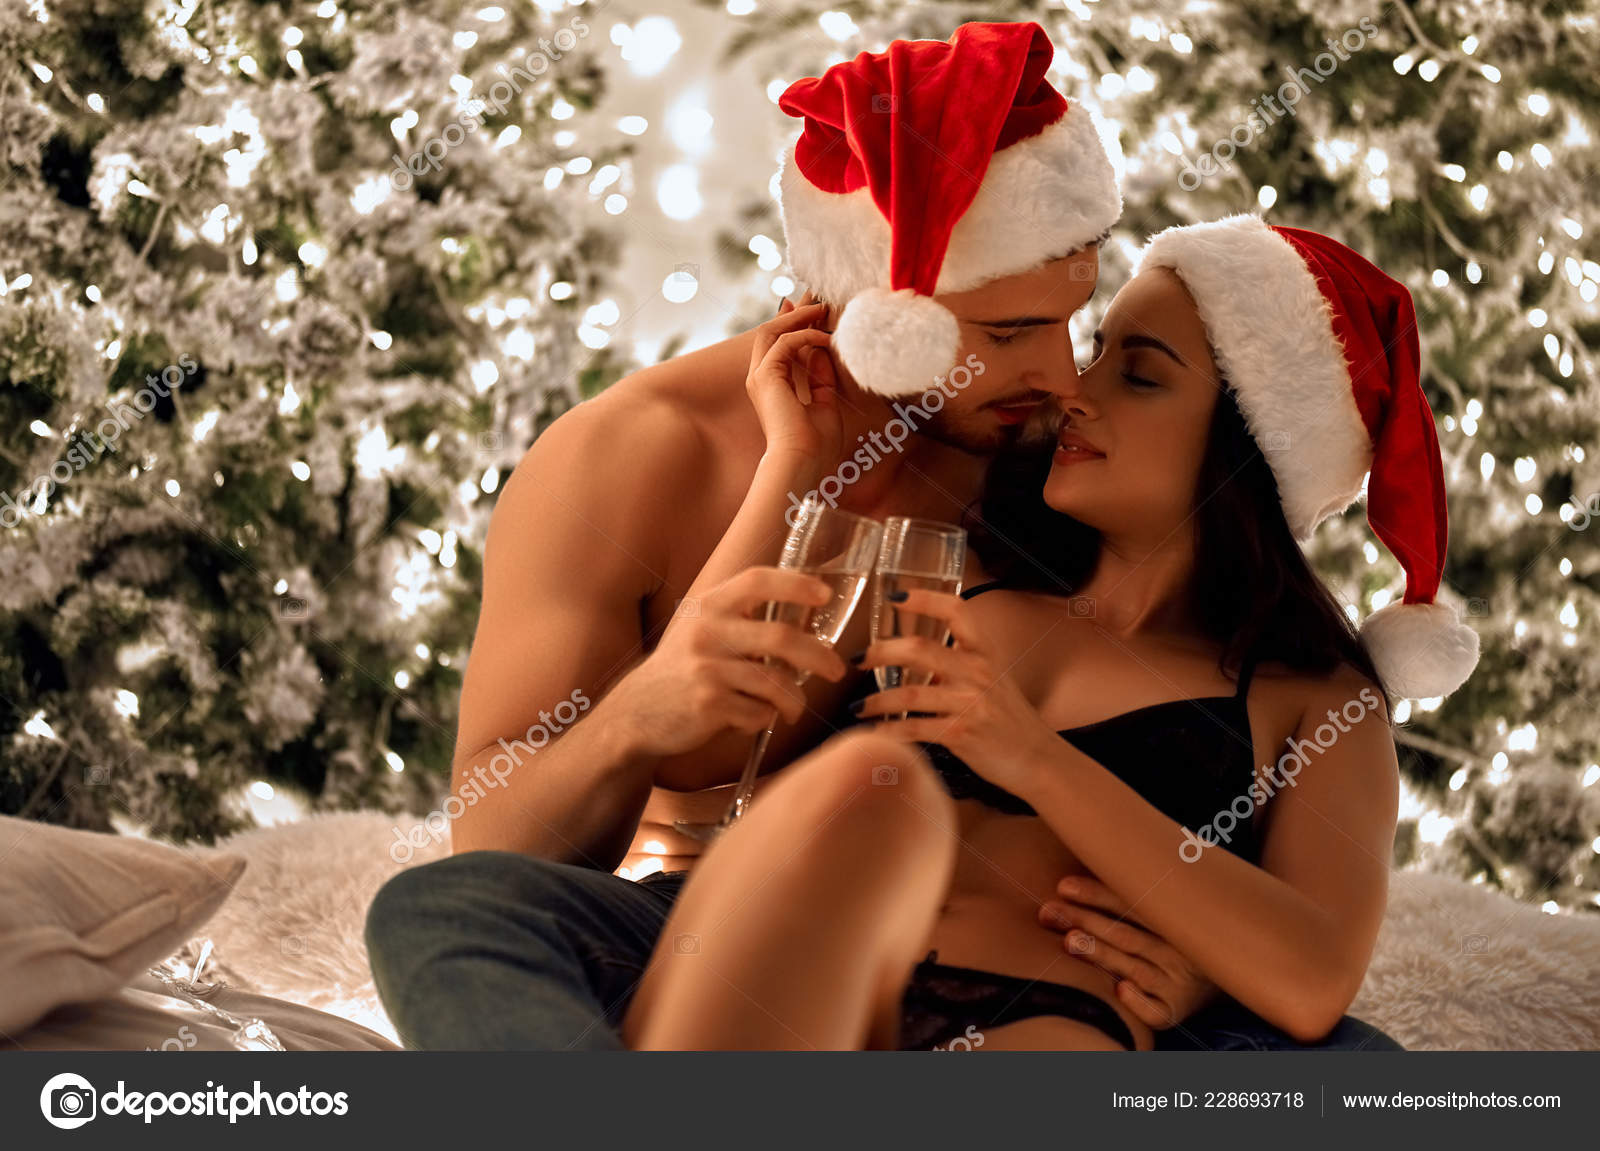 Merry Christmas Happy New Year Sexy Passionate Couple Celebrating